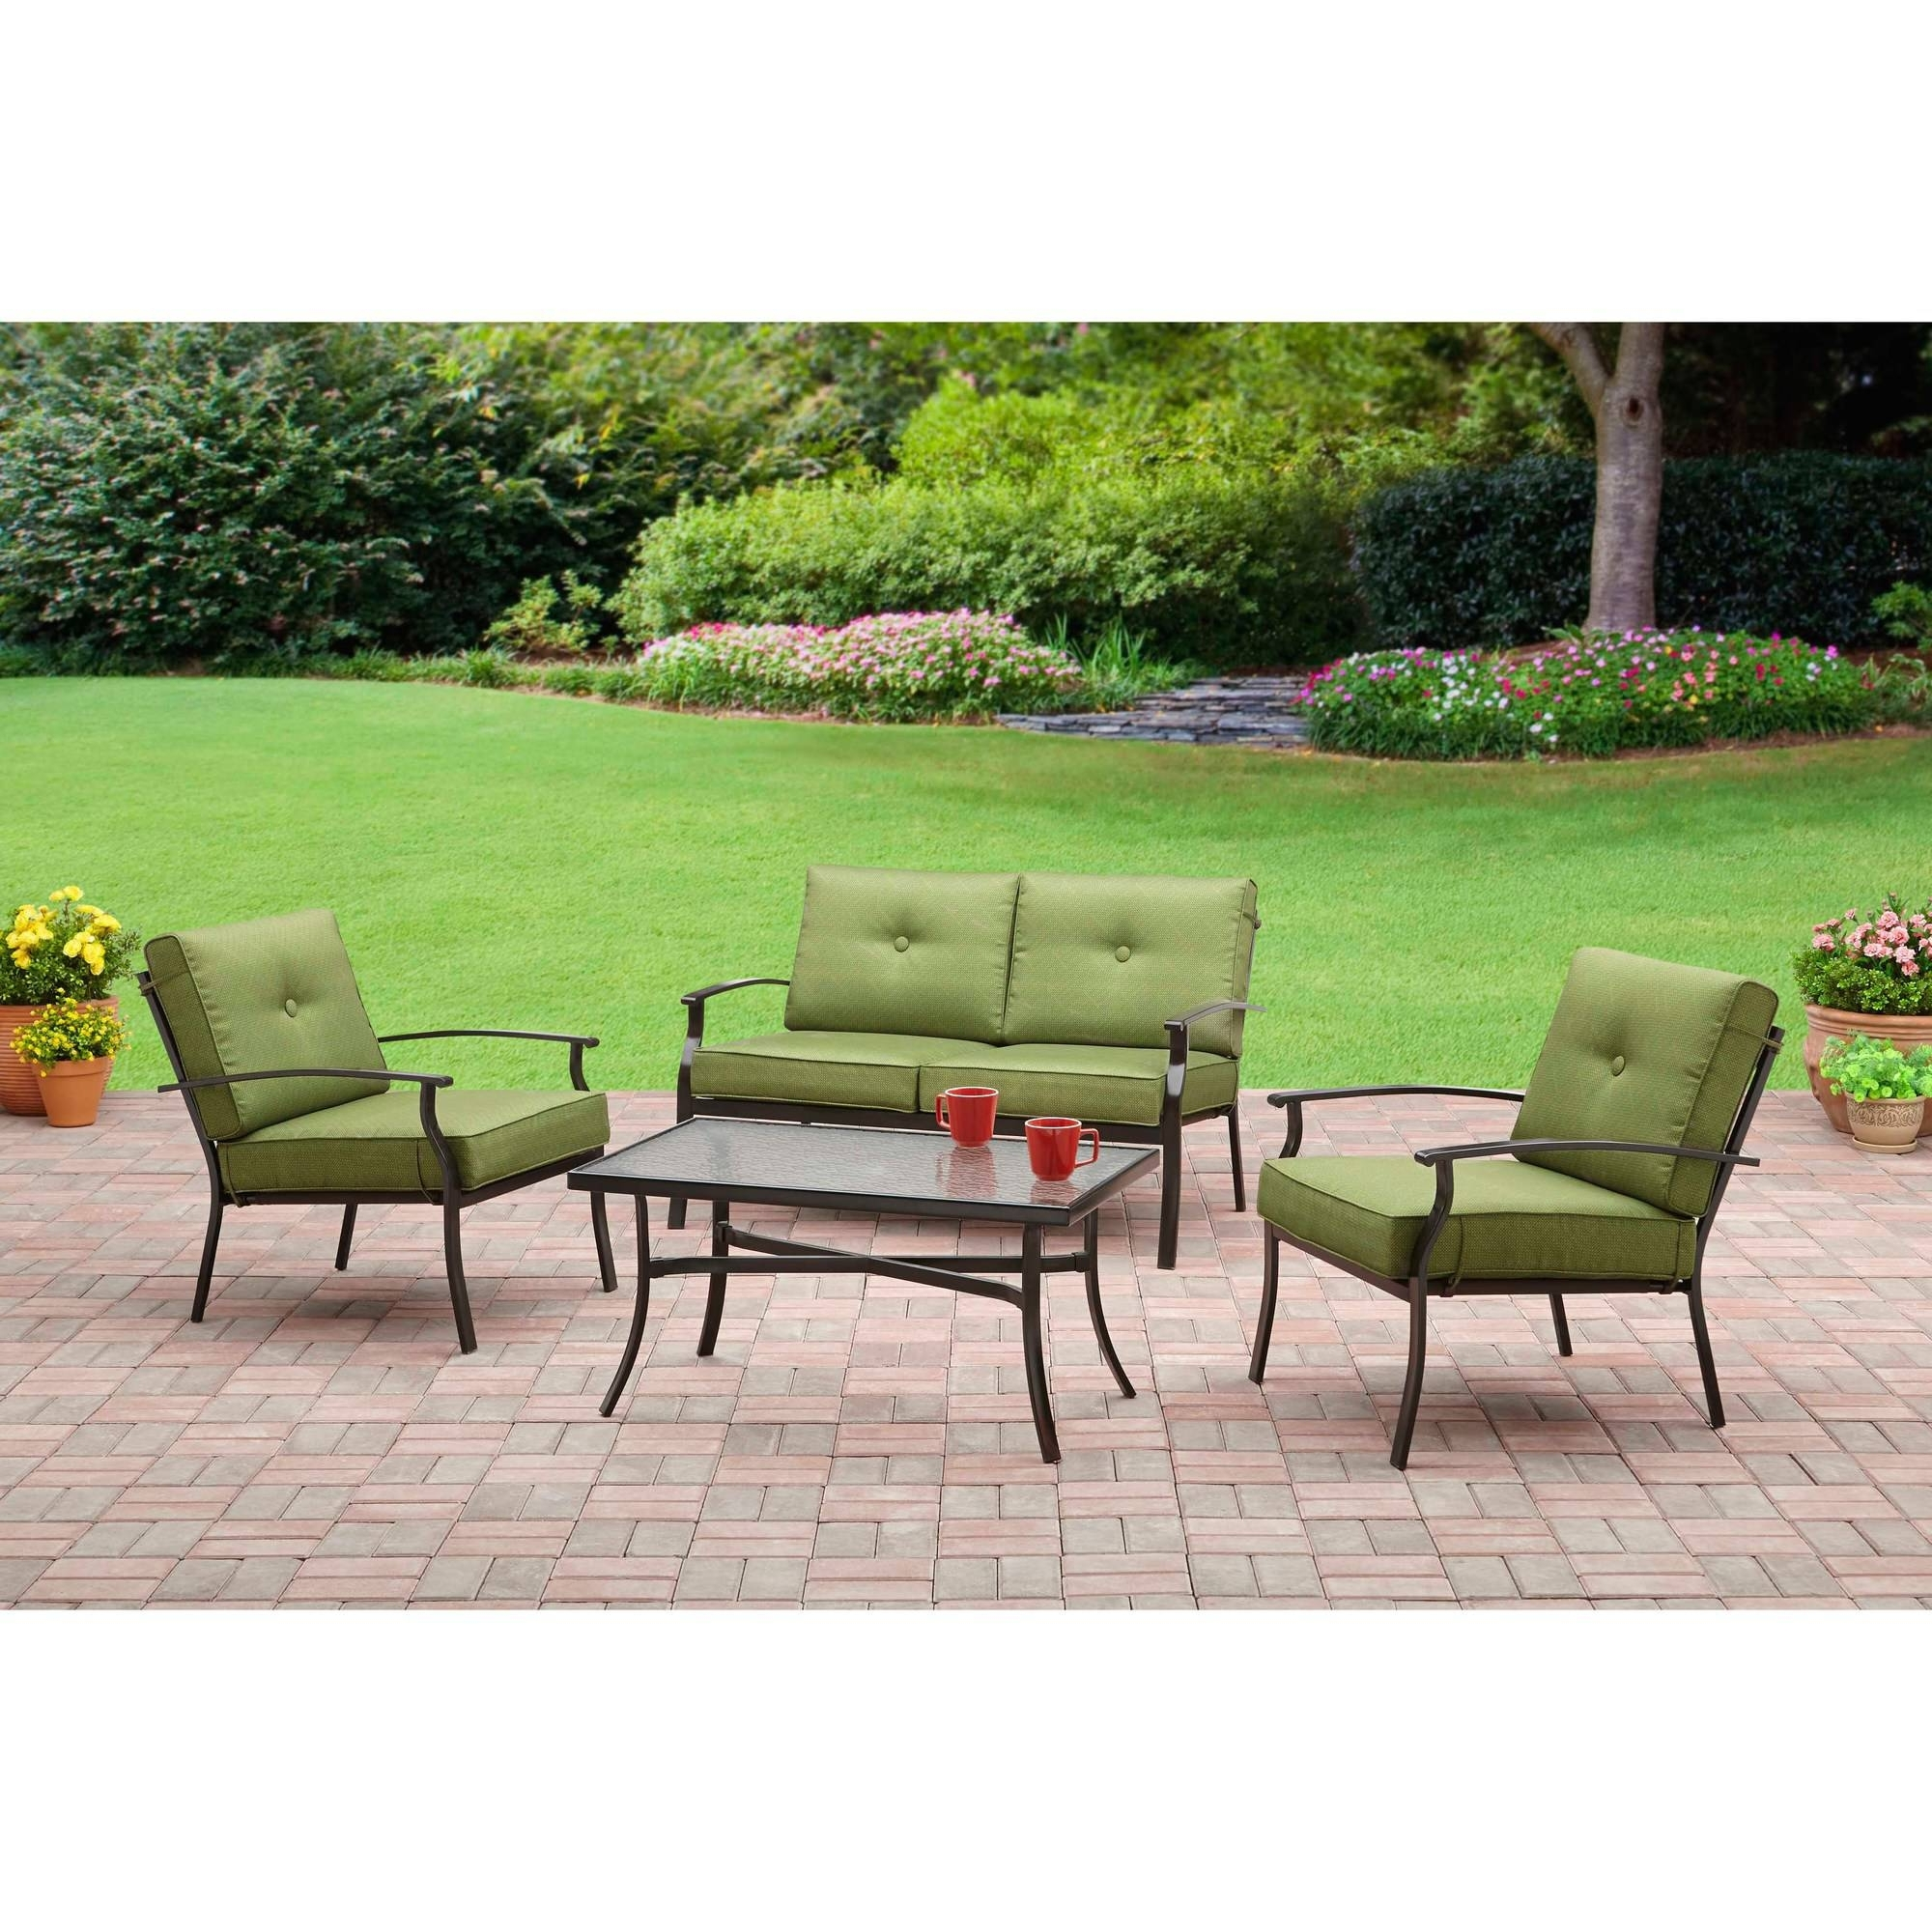 Popular 4 Piece Patio Conversation Sets Intended For Mainstays Bryant Place 4 Piece Conversation Set, Green – Walmart (View 13 of 15)